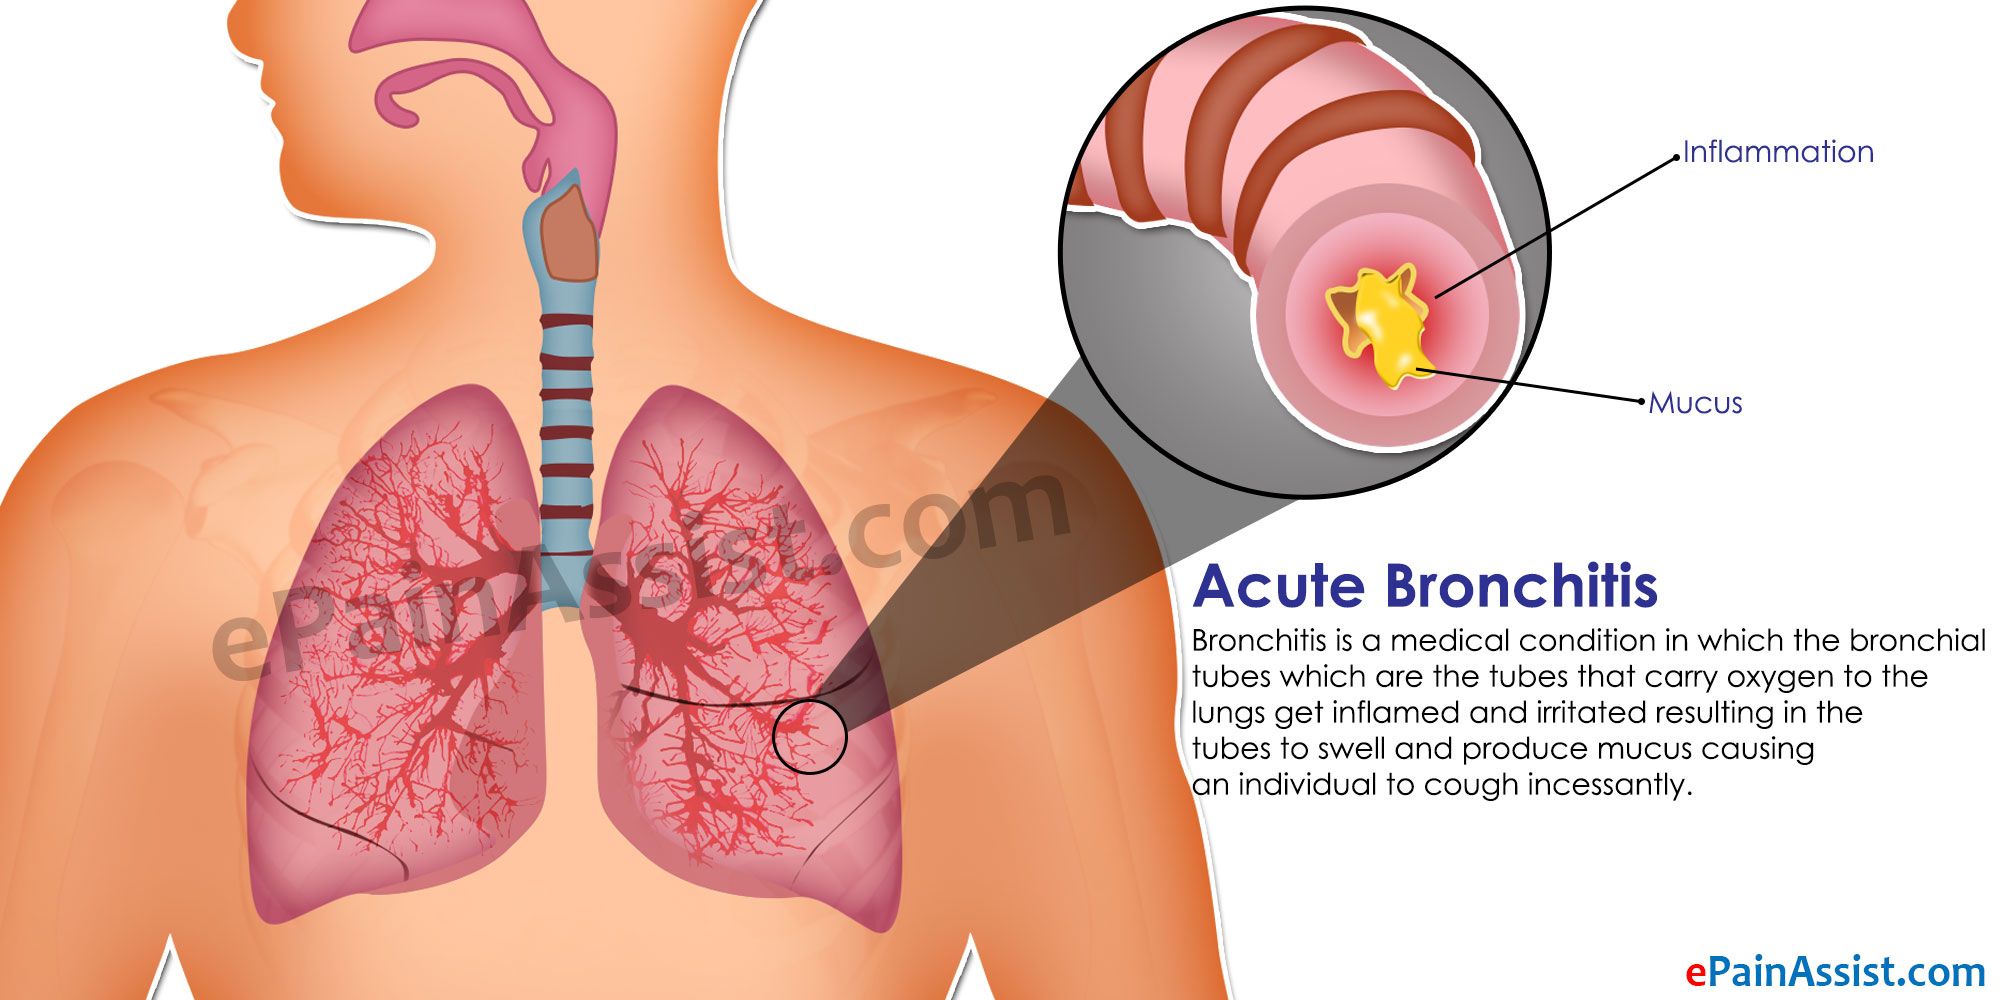 Acute Bronchitis Treatment Home Remedies Prevention Symptoms